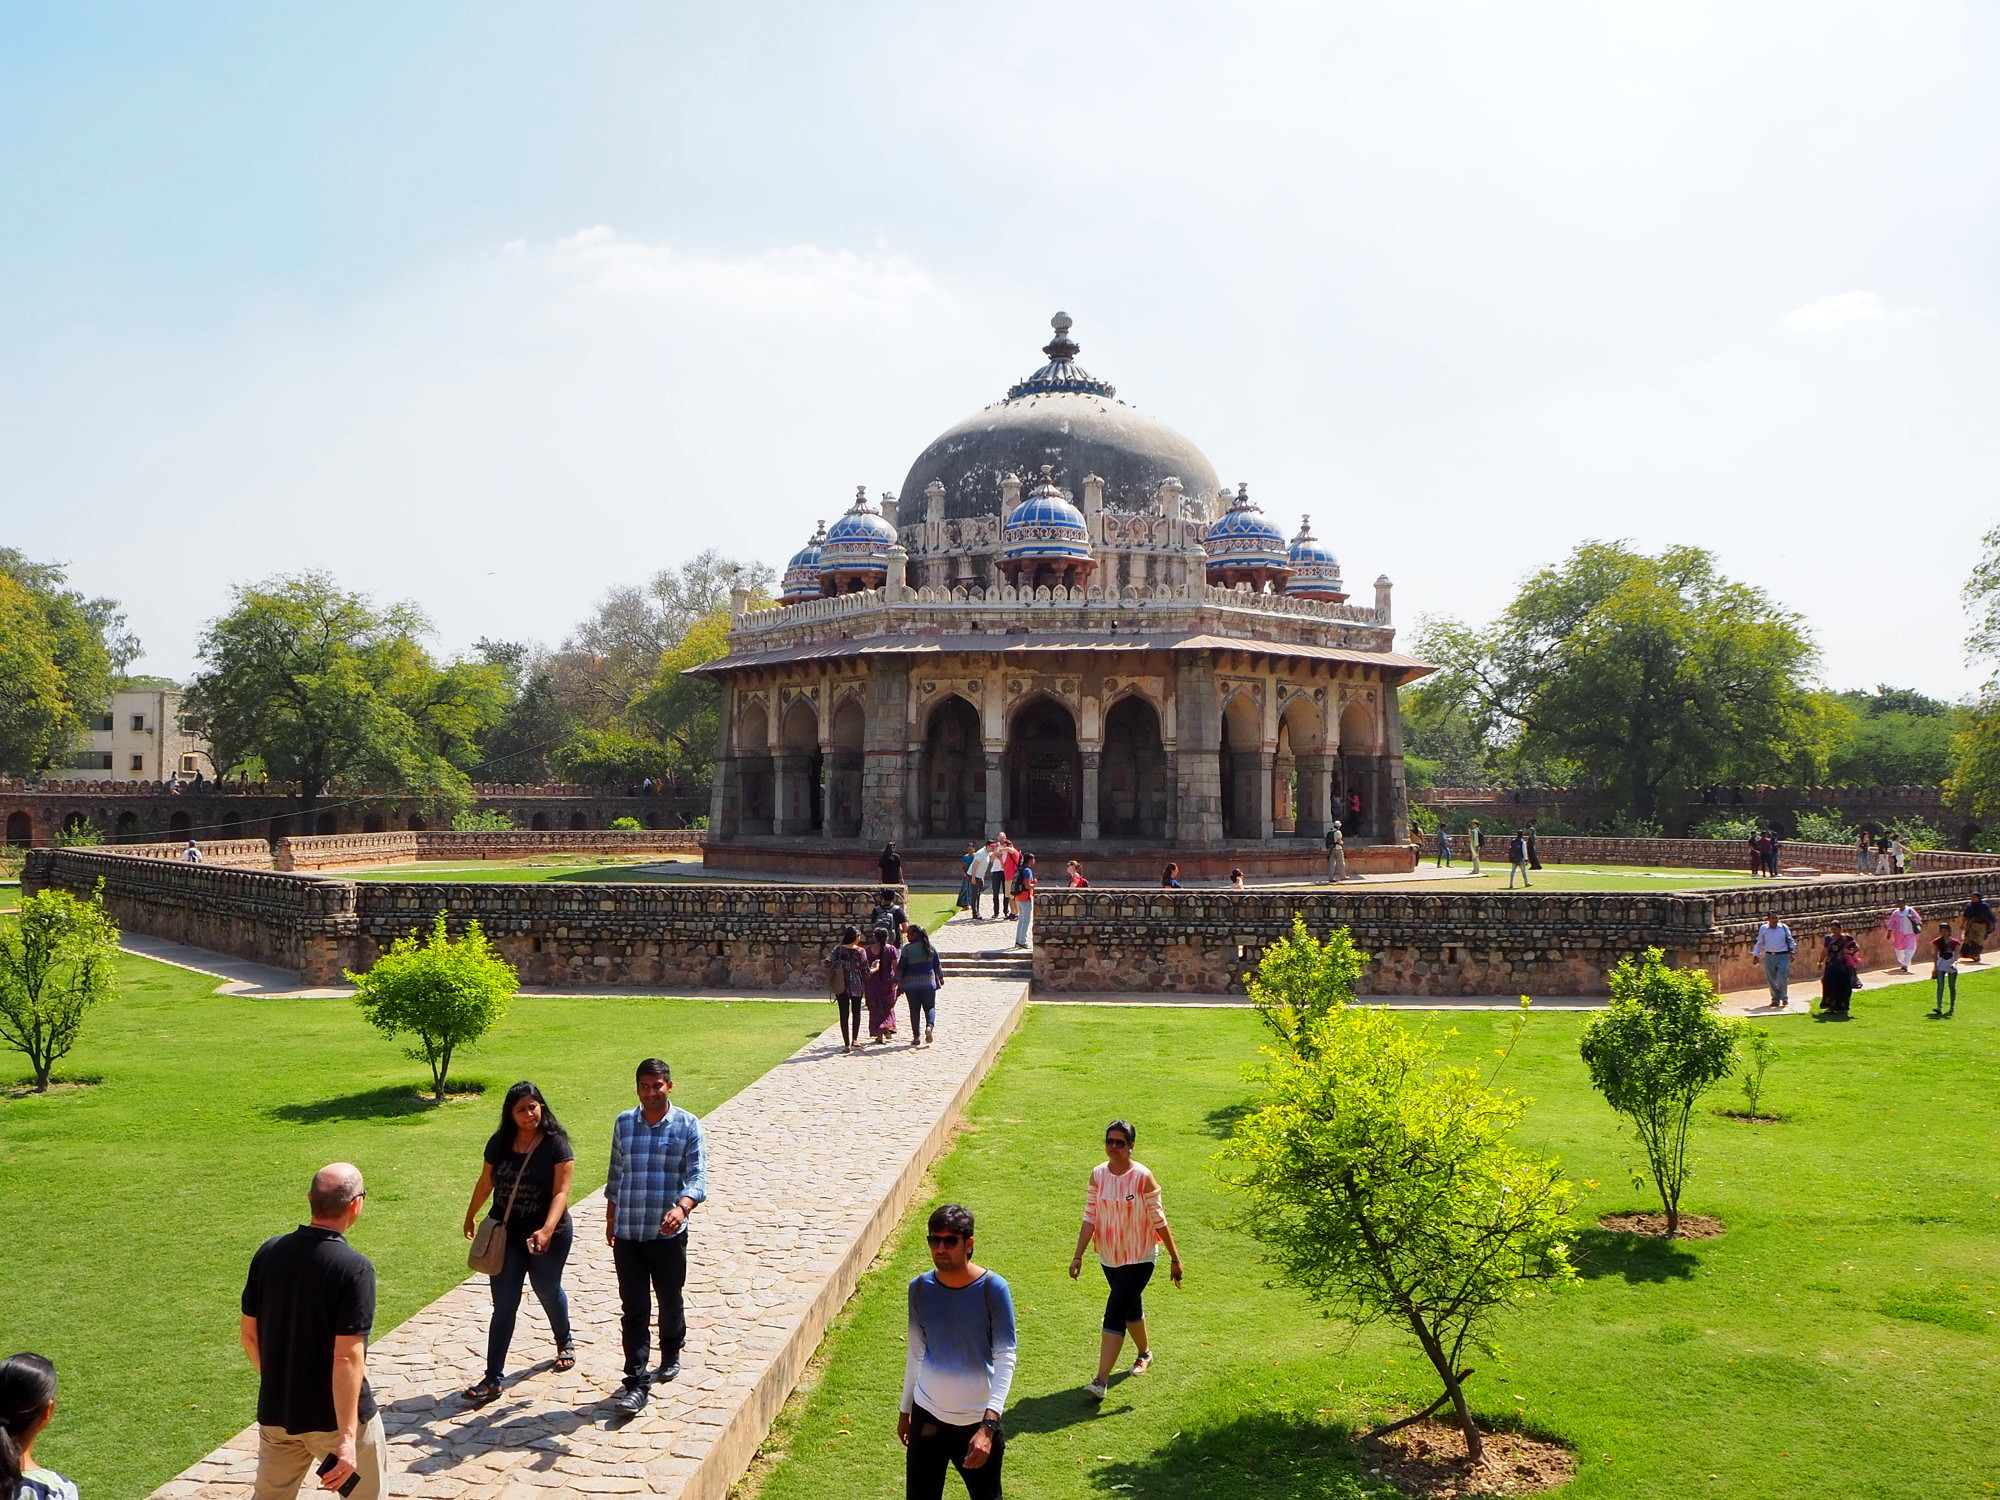 At Humayun's Tomb: A building made out of gray stone with several small blue domes around a large dome on the roof, surrounded by lime-green grass, tourists, and trees in the background.